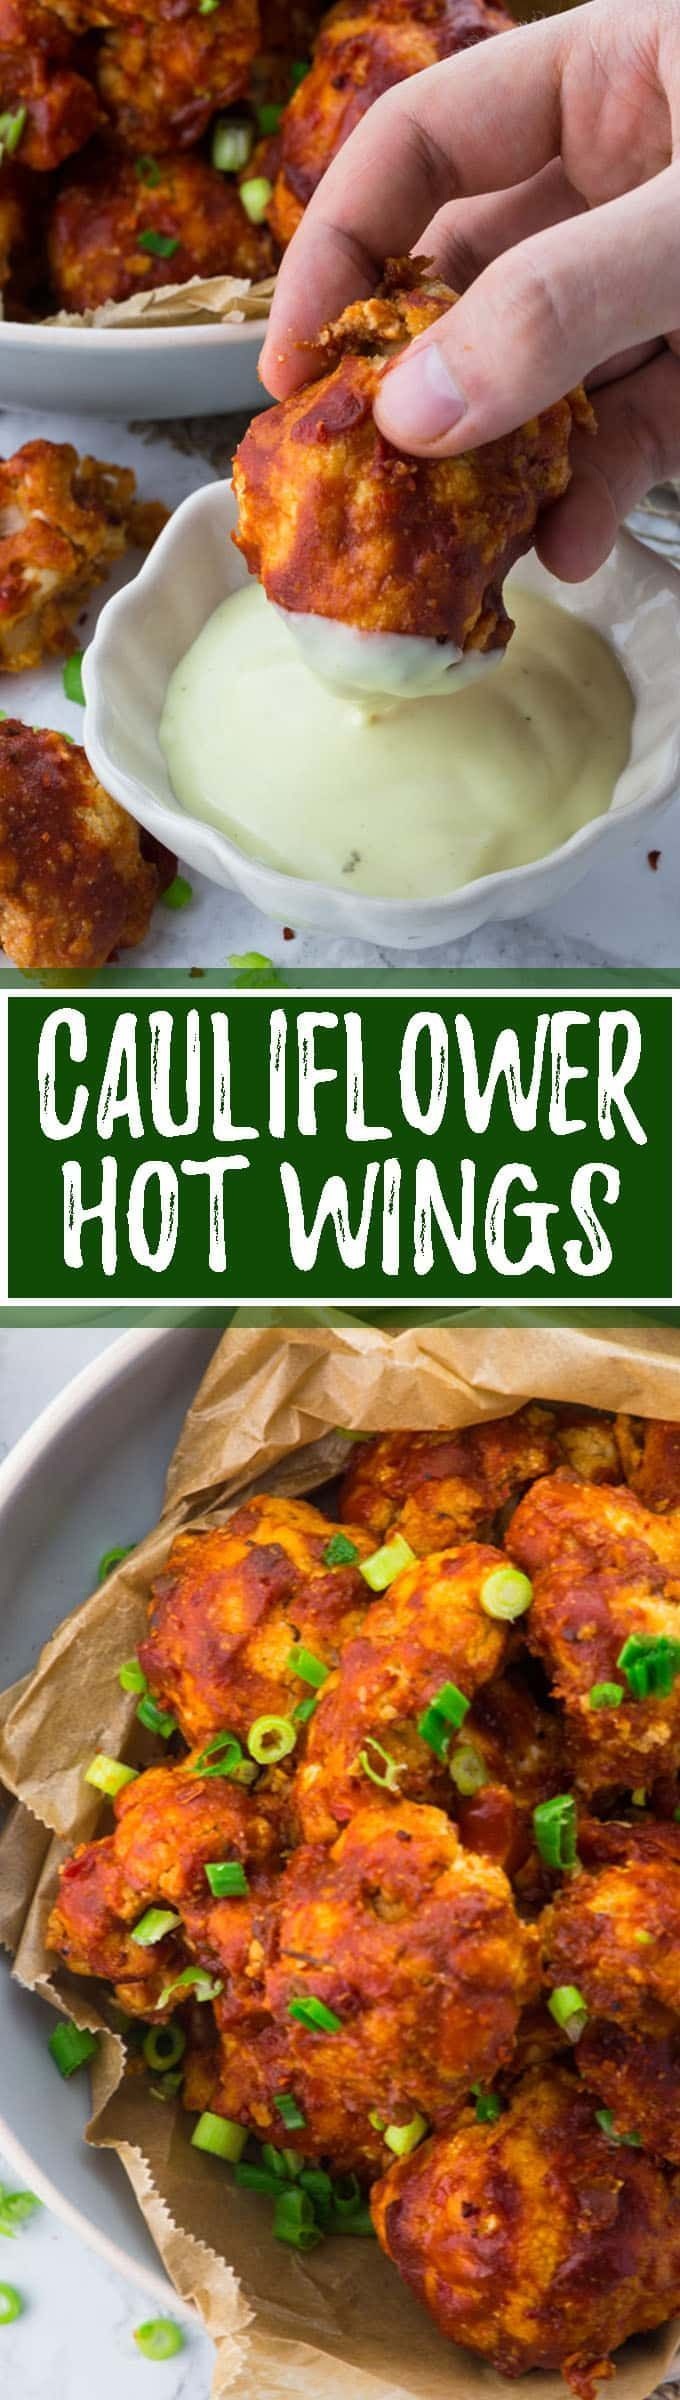 These vegan cauliflower hot wings are the perfect comfort food. They're so tangy & spicy! Such a delicious vegan recipe. I like them best with vegan aioli. Or fill them in pitas and you got an amazing vegan dinner! Big YUM!!